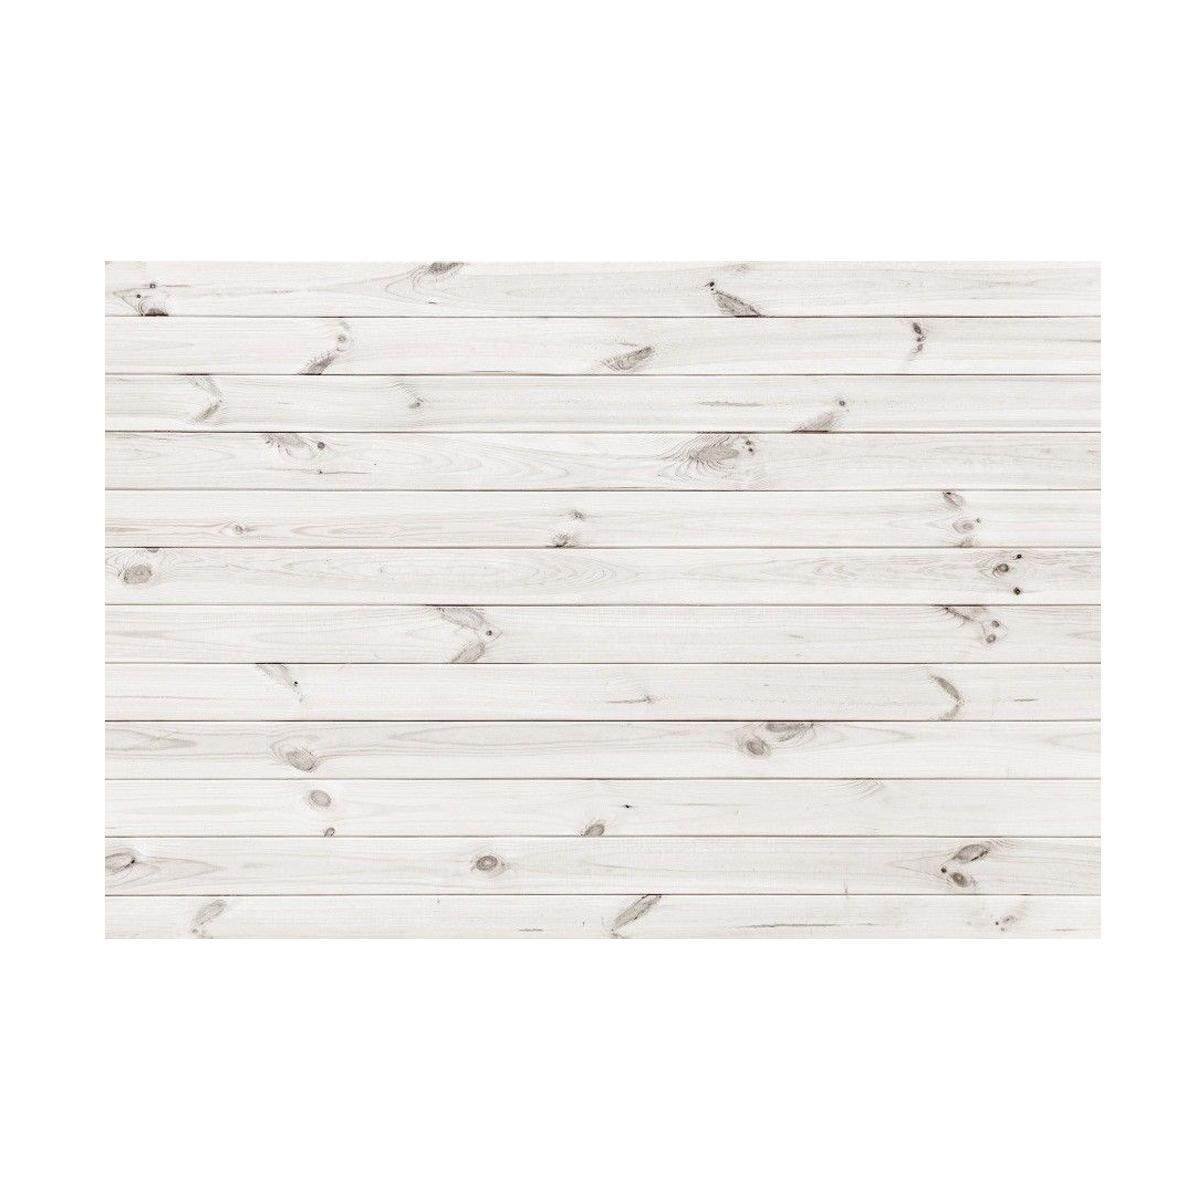 7x5ft Background Vinyl Photo Backdrop Studio Props White Wood Board Plank Theme - intl